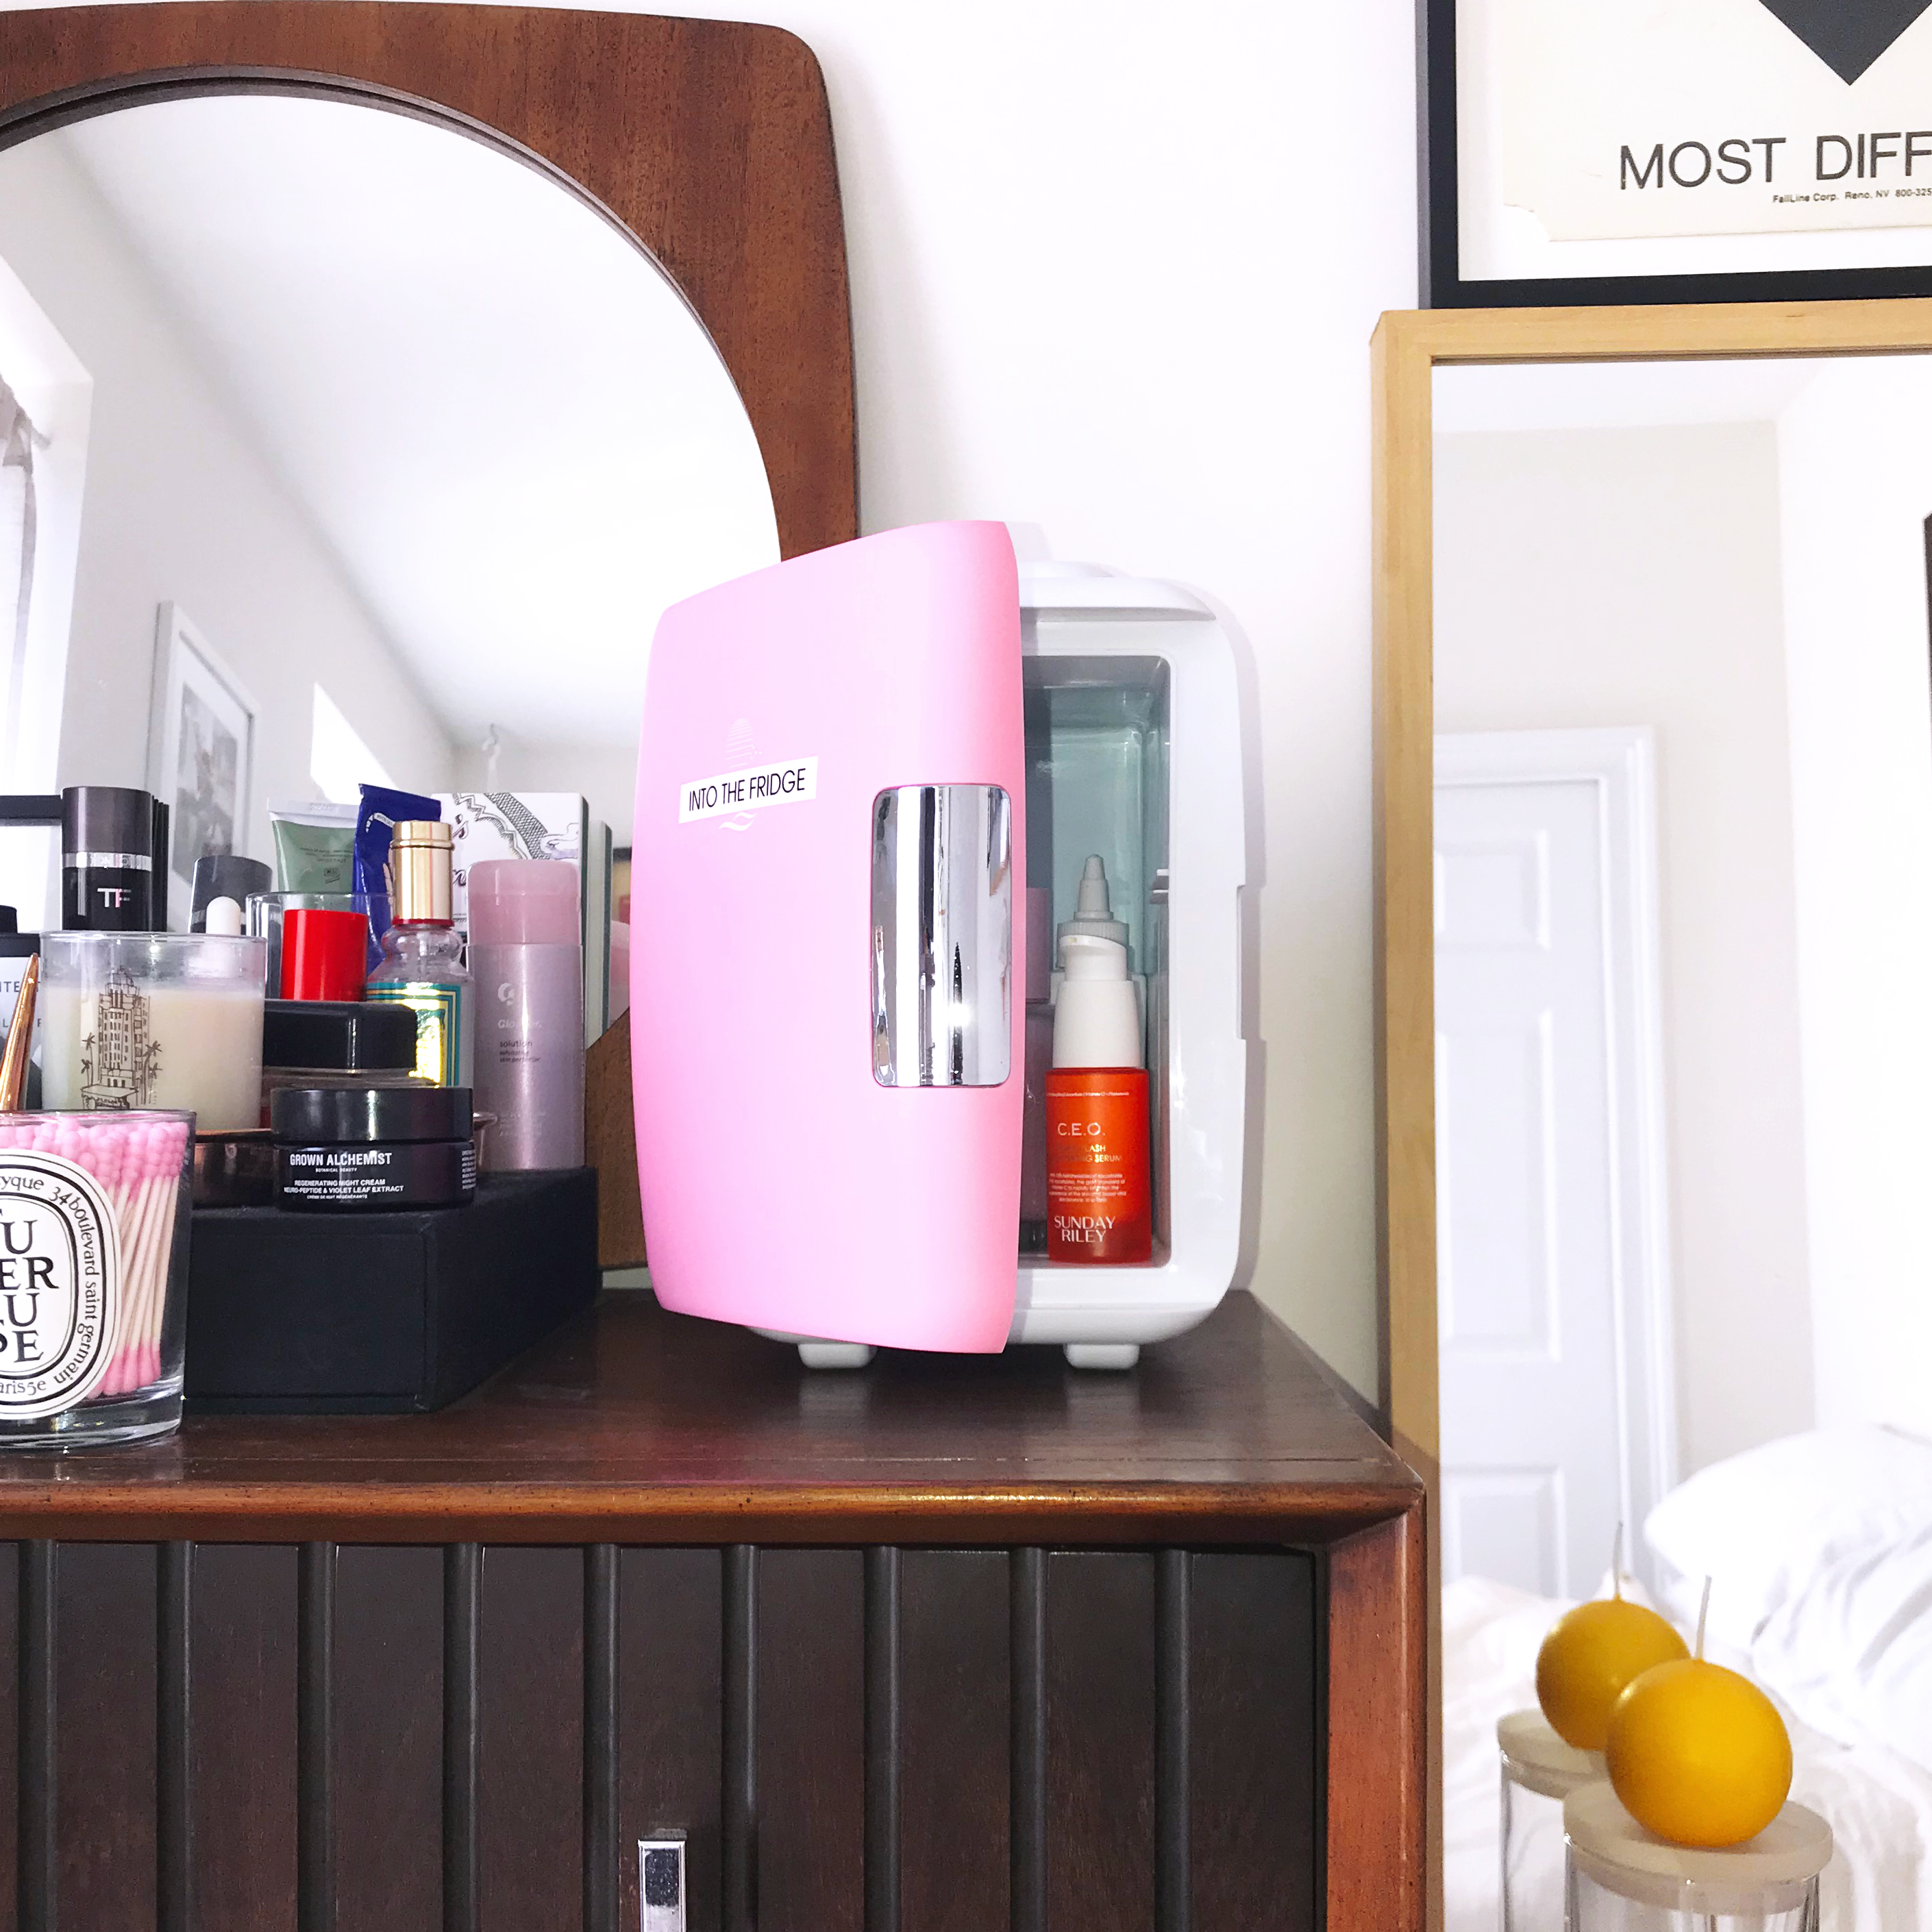 Introducing The Top Fridge Skin care, Beauty tips for